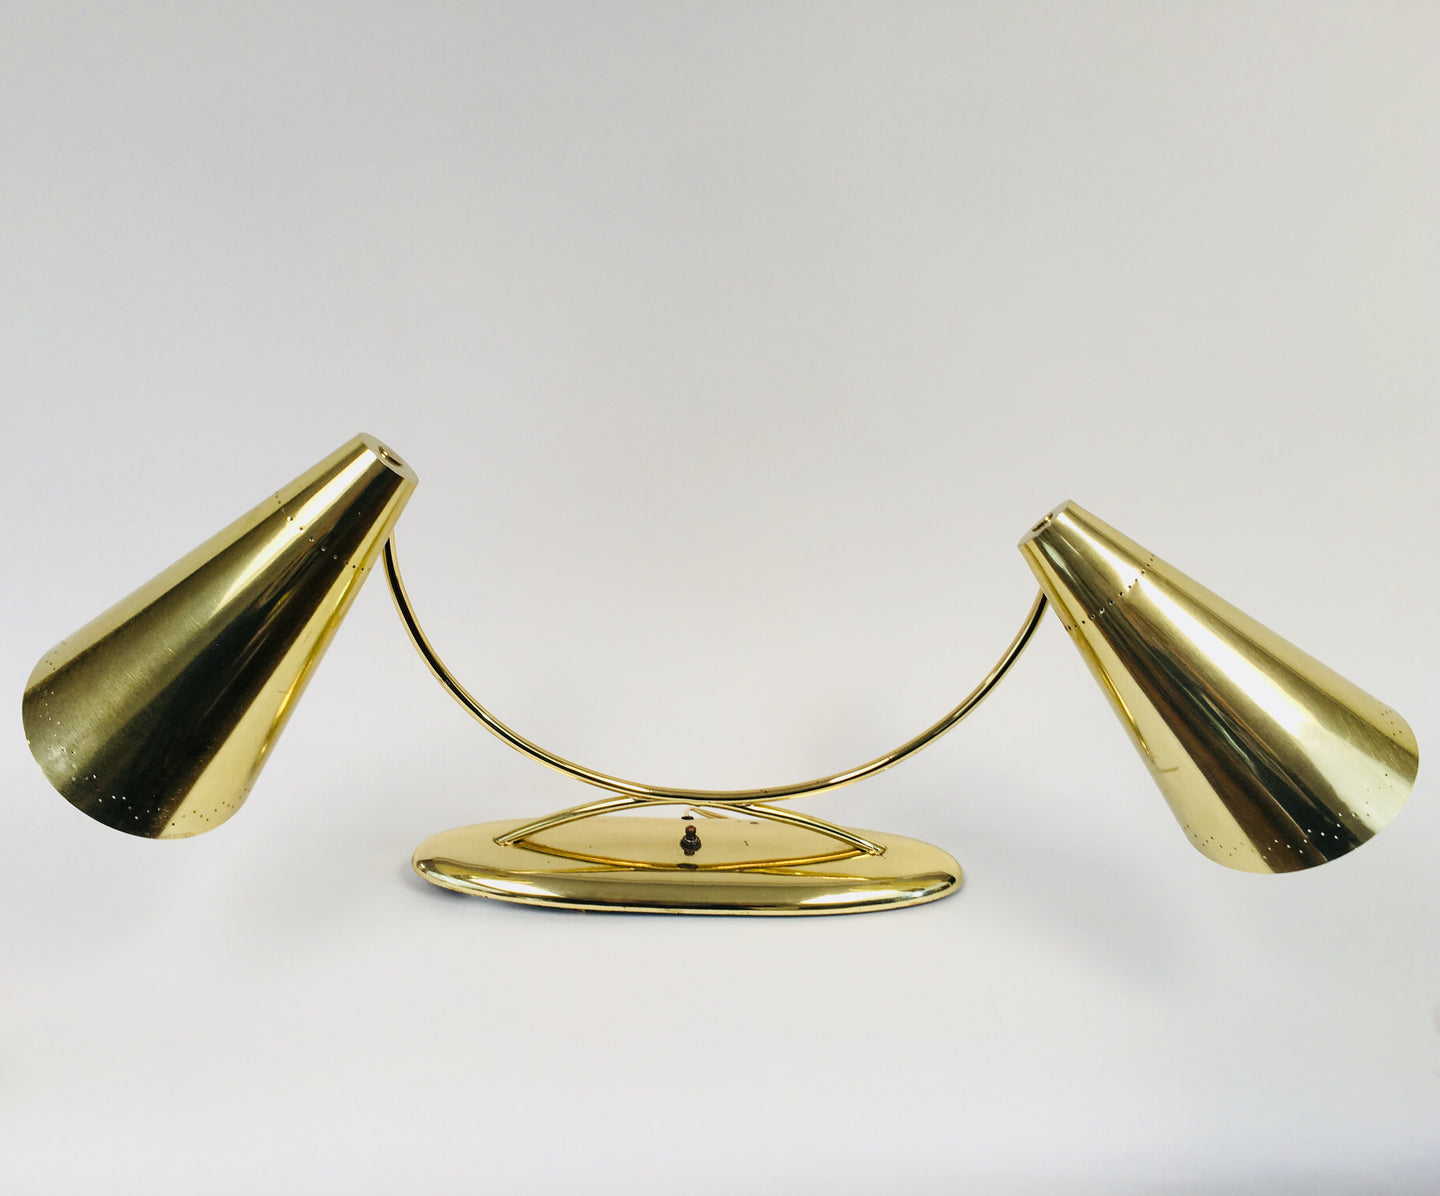 Vintage Brass Laurel Perforated Double Cone Desk Lamp